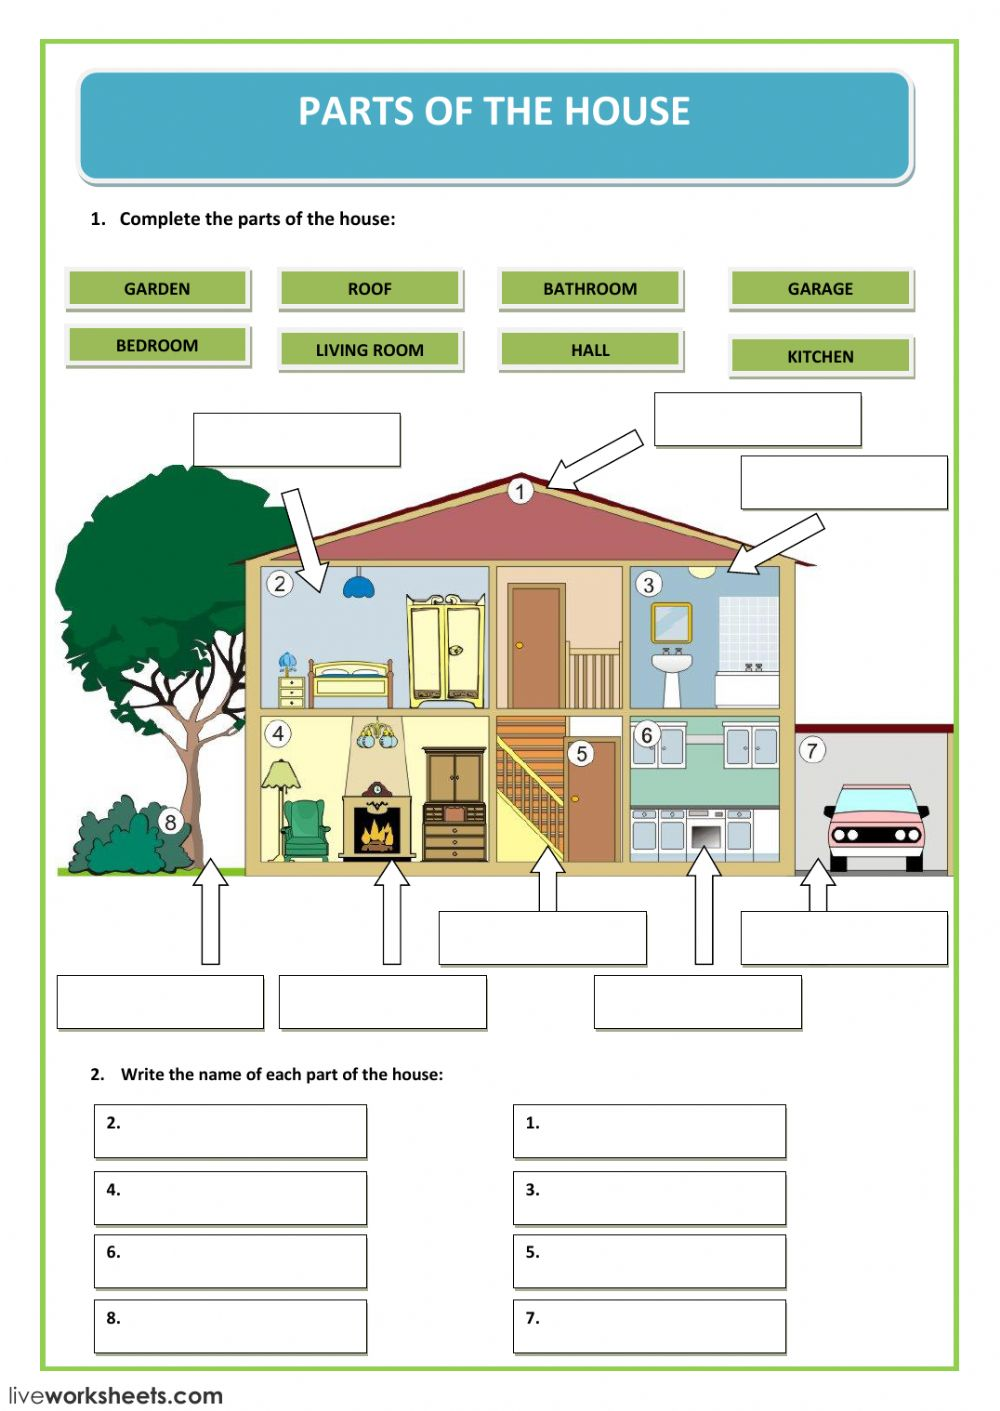 medium resolution of parts of the house worksheet